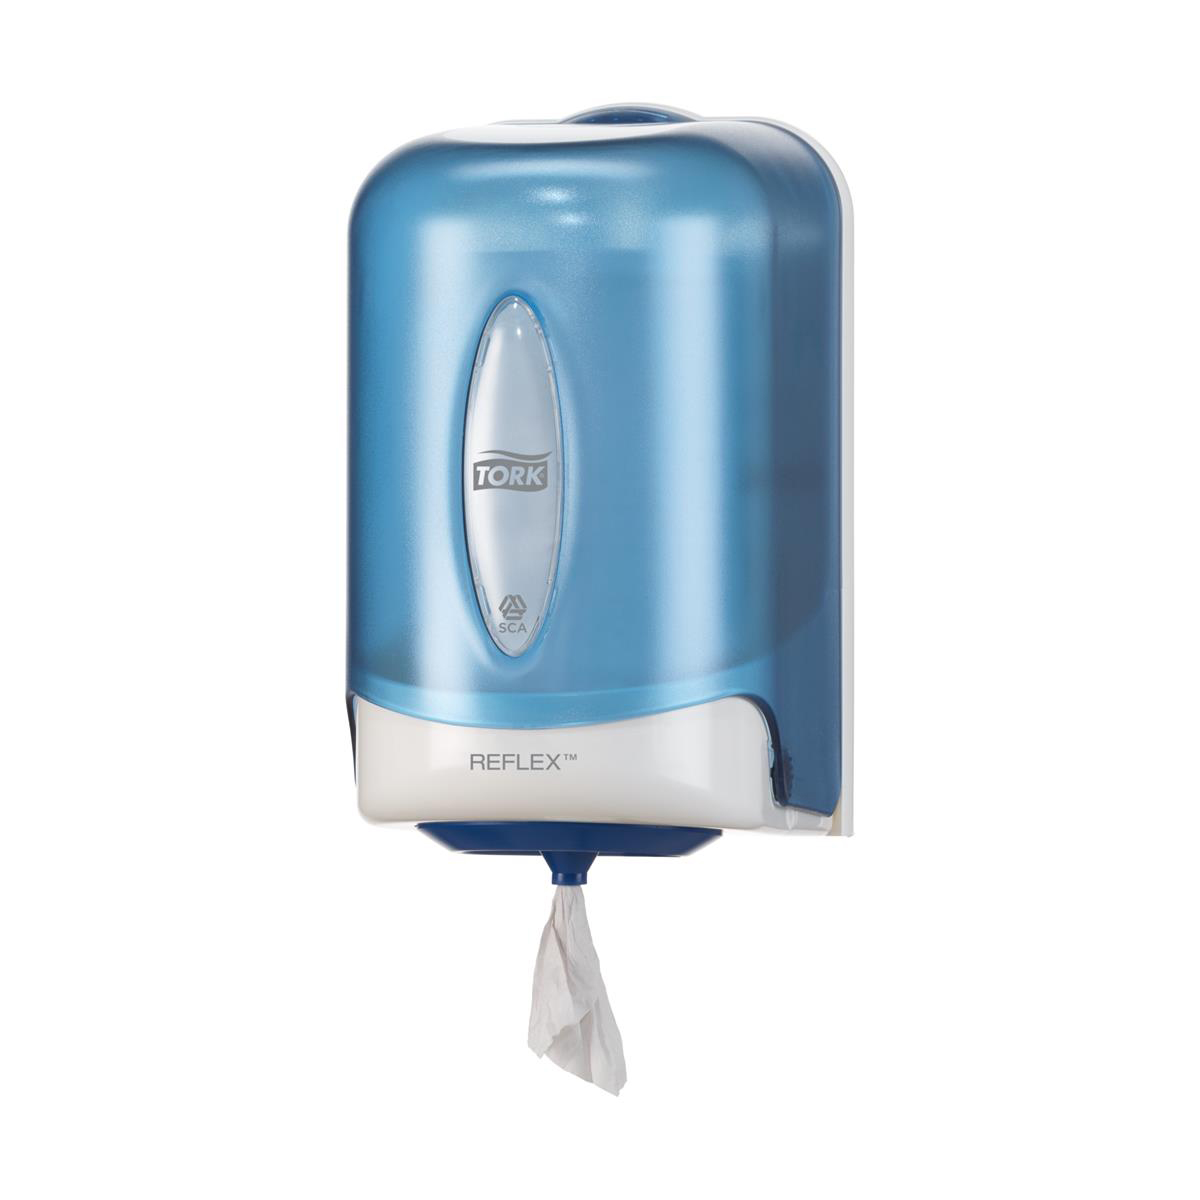 Tork Reflex Single Sheet Mini Centrefeed Dispenser W182xD210xH310mm Plastic Blue Ref 473137